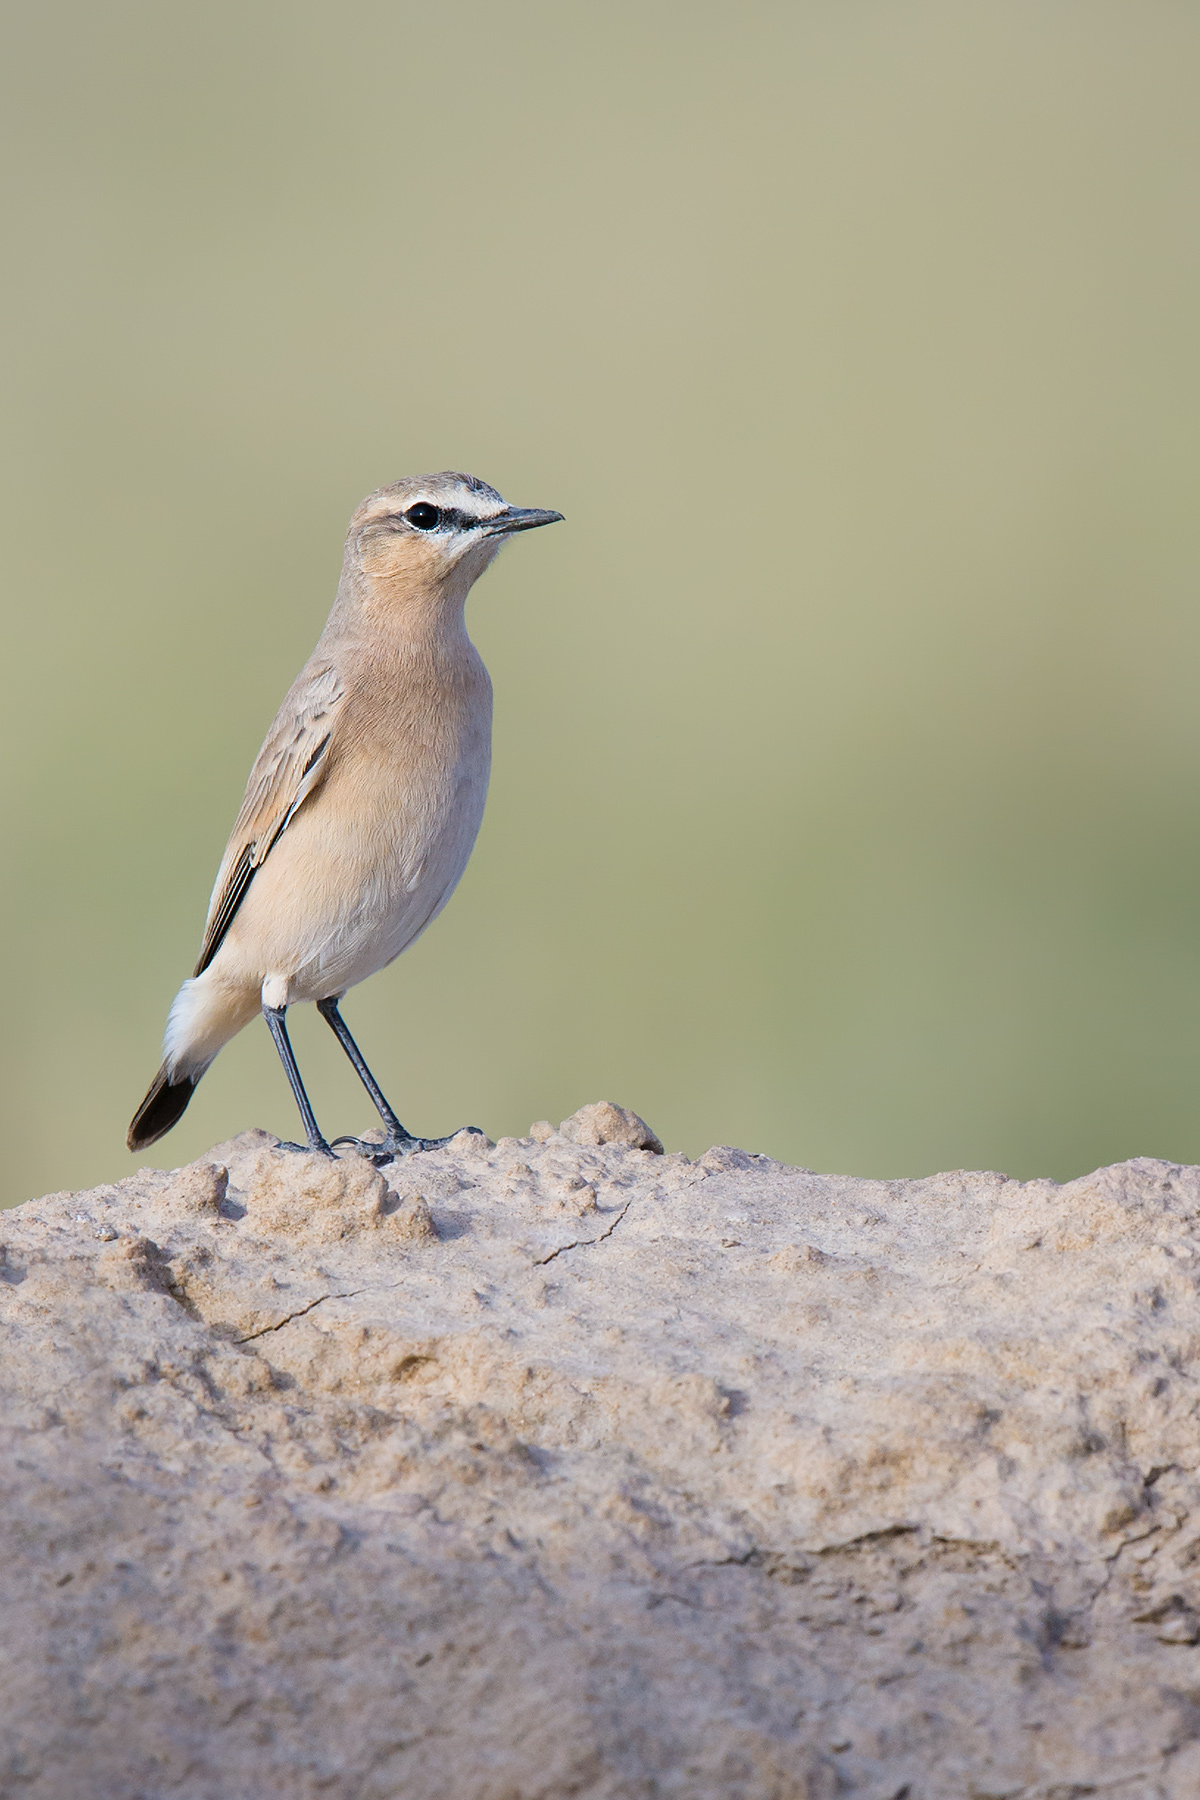 Isabelline Wheatear are abundant in the semi-deserts of Wulan County. 18 Aug. 2016.